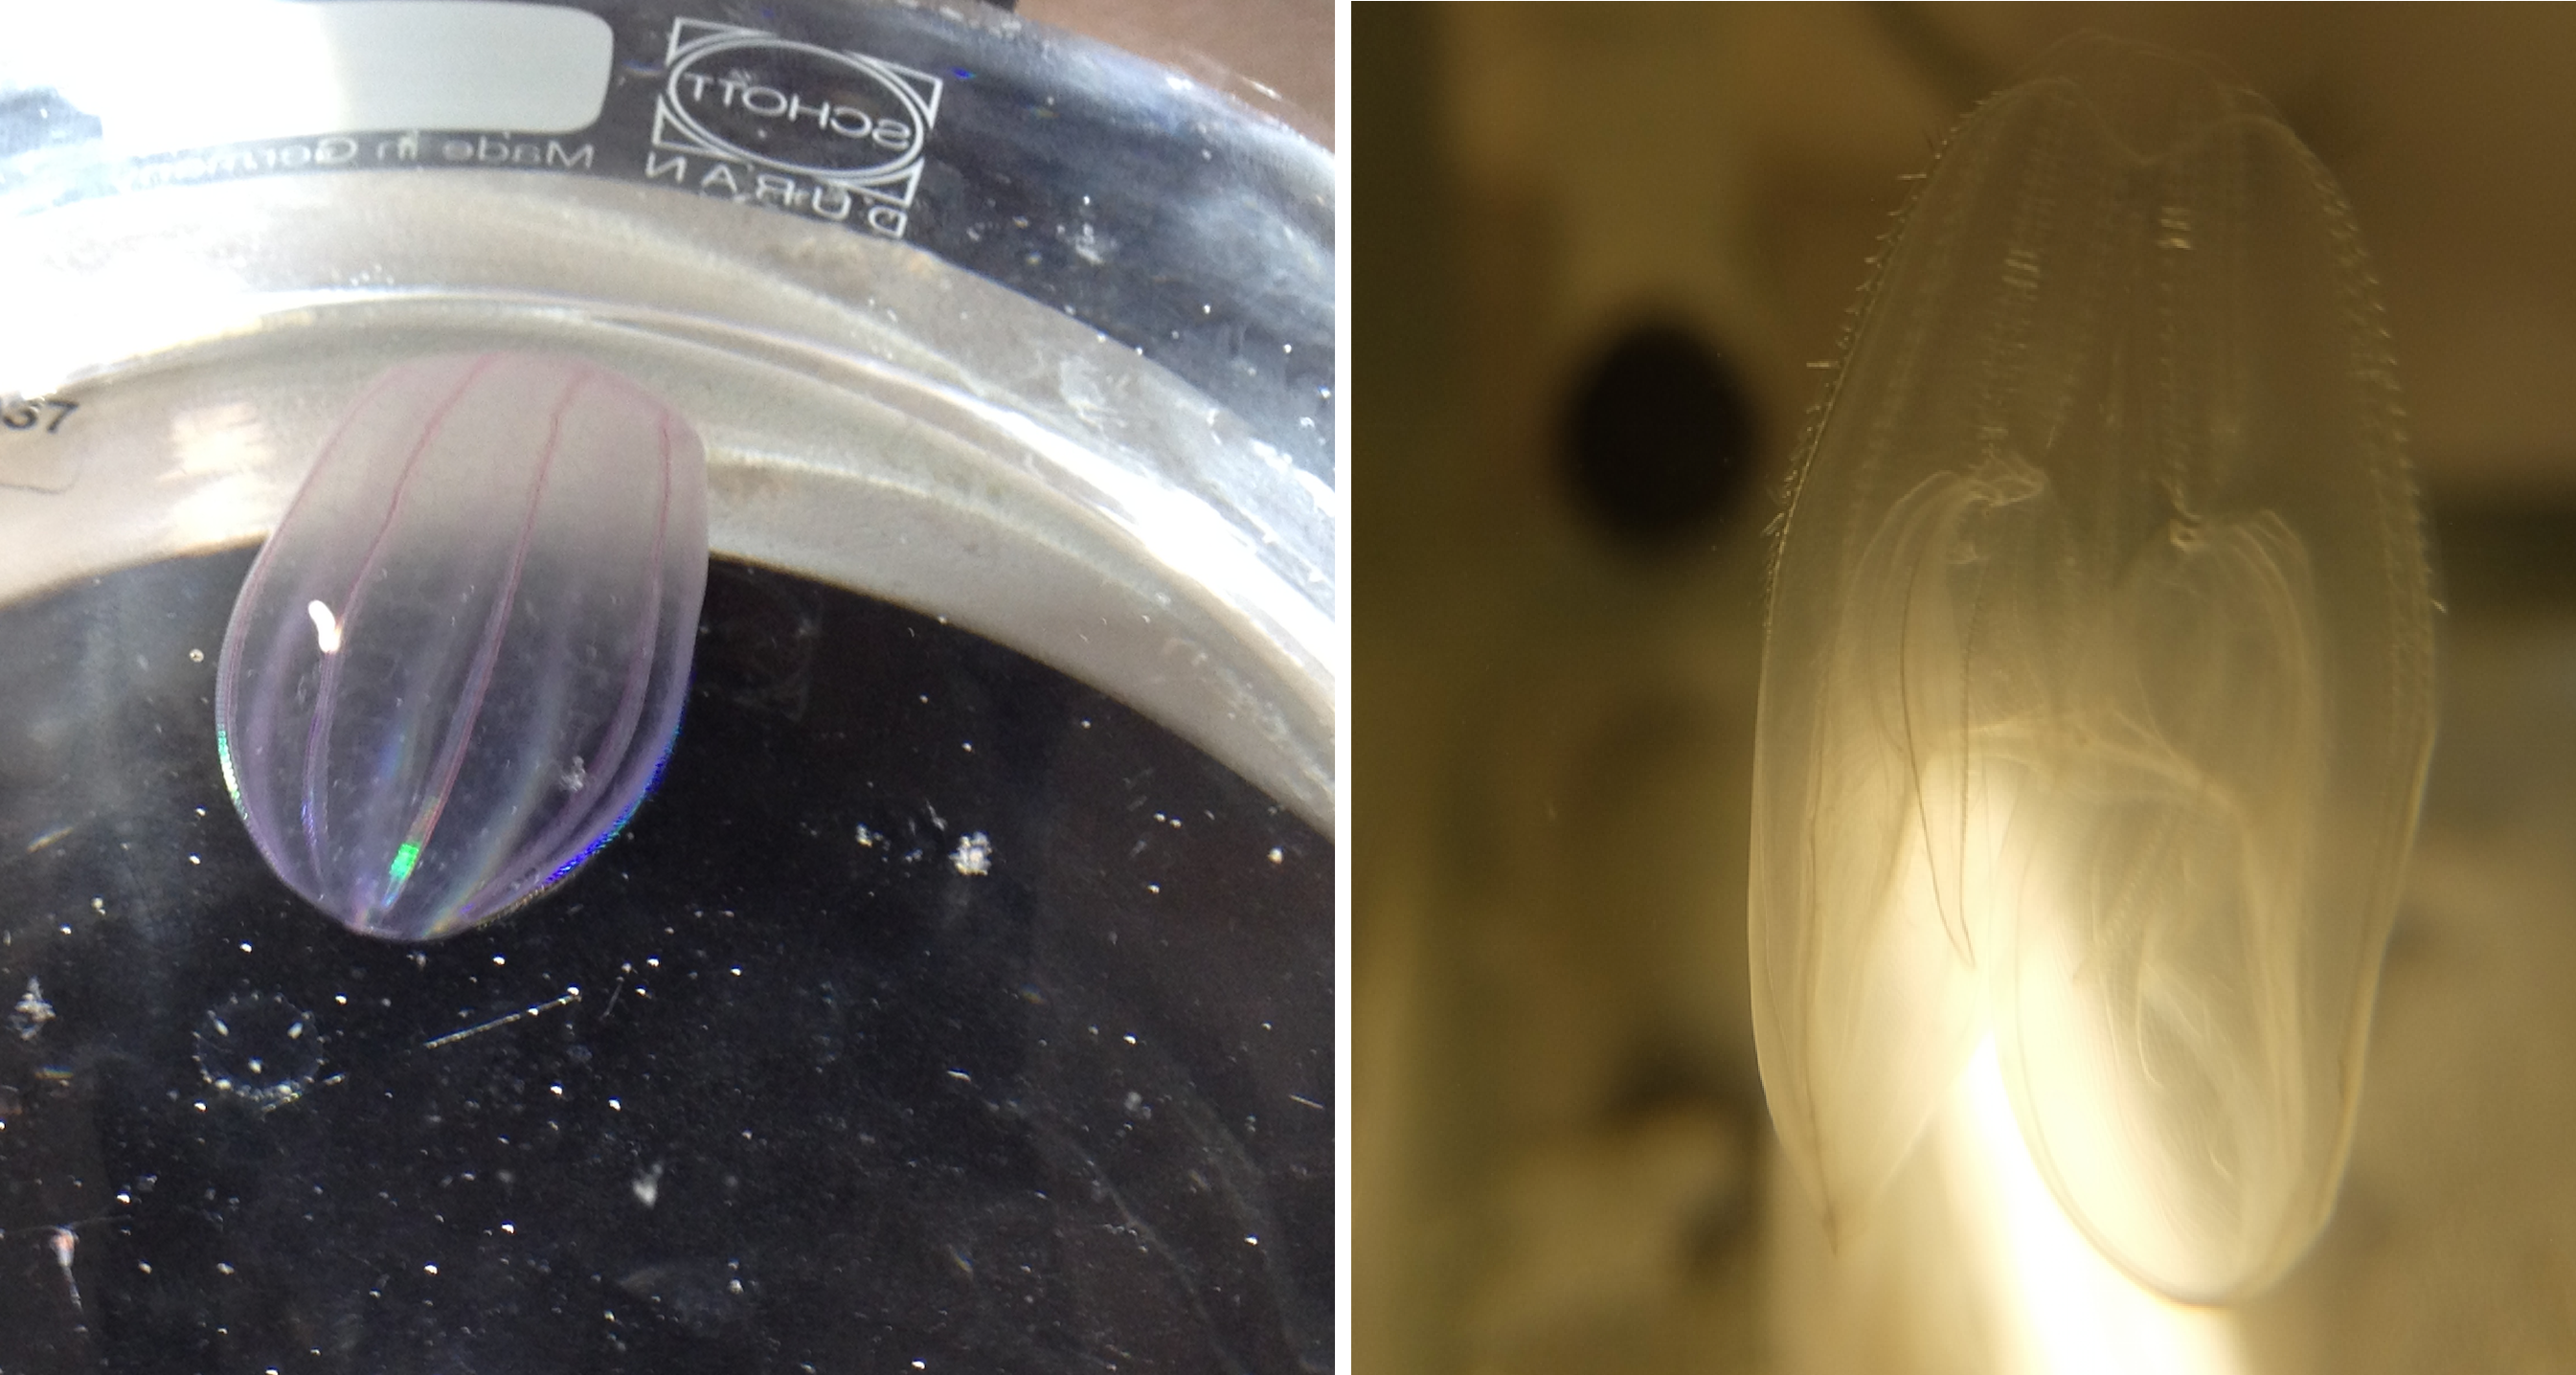 Pictures 6 : Examples of gelatinous zooplankton (Beroe sp. and Bolinopsis sp.) collected during the mesocosm experiment - © M. Stockenreiter, Luna Benitez Requena, Sabine Schultes and Patrick Fink